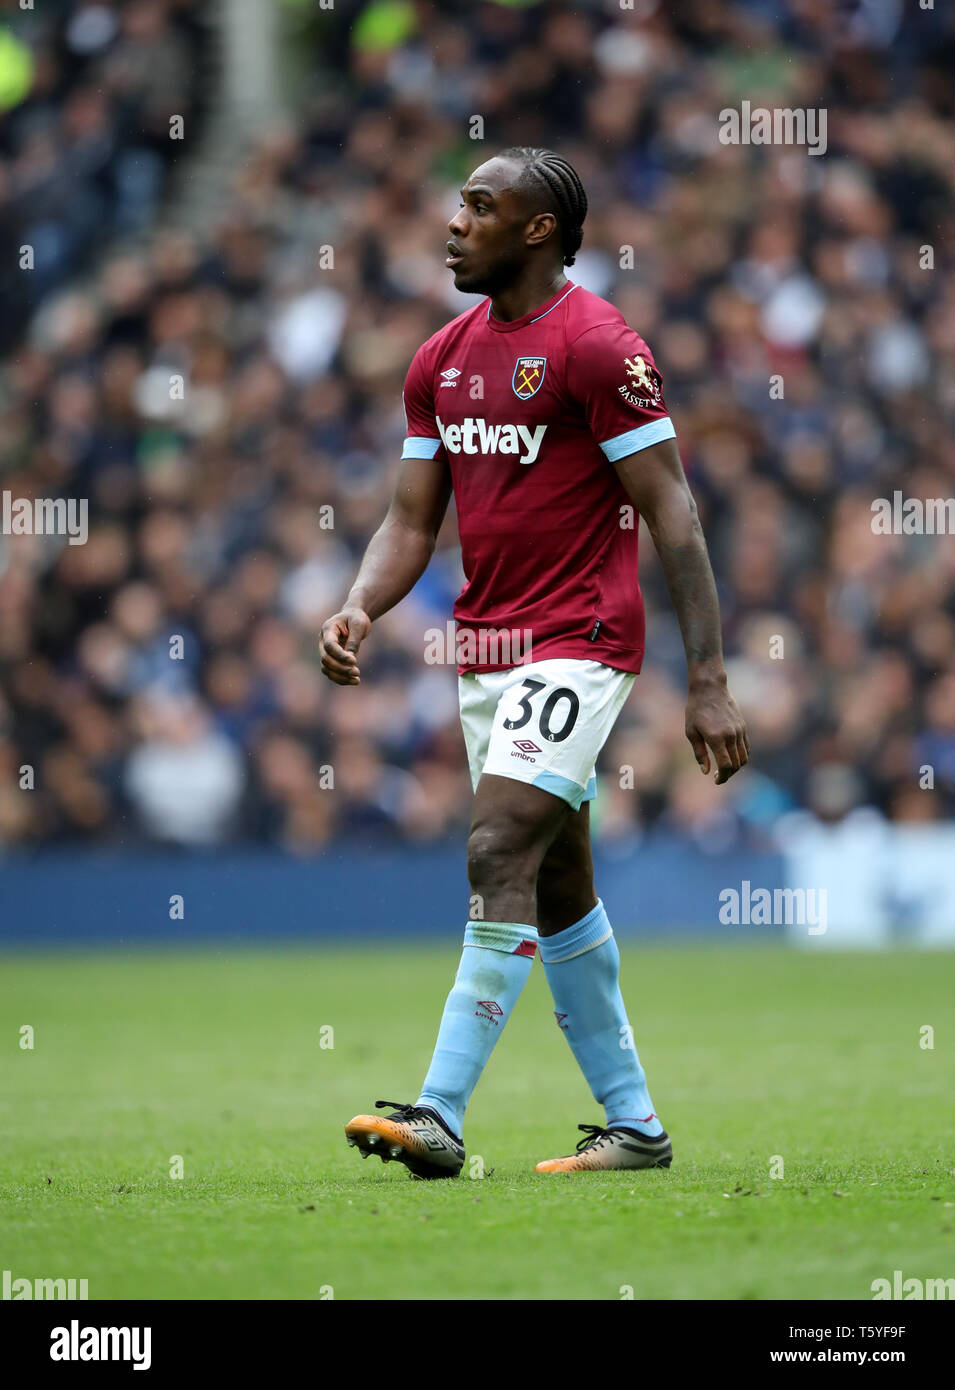 London, UK. 27th Apr 2019. Michail Antonio (WHU) at the Tottenham Hotspur v West Ham United English Premier League match, at The Tottenham Hotspur Stadium, London, UK on April 27, 2019. **Editorial use only, license required for commercial use. No use in betting, games or a single club/league/player publications** Credit: Paul Marriott/Alamy Live News - Stock Image